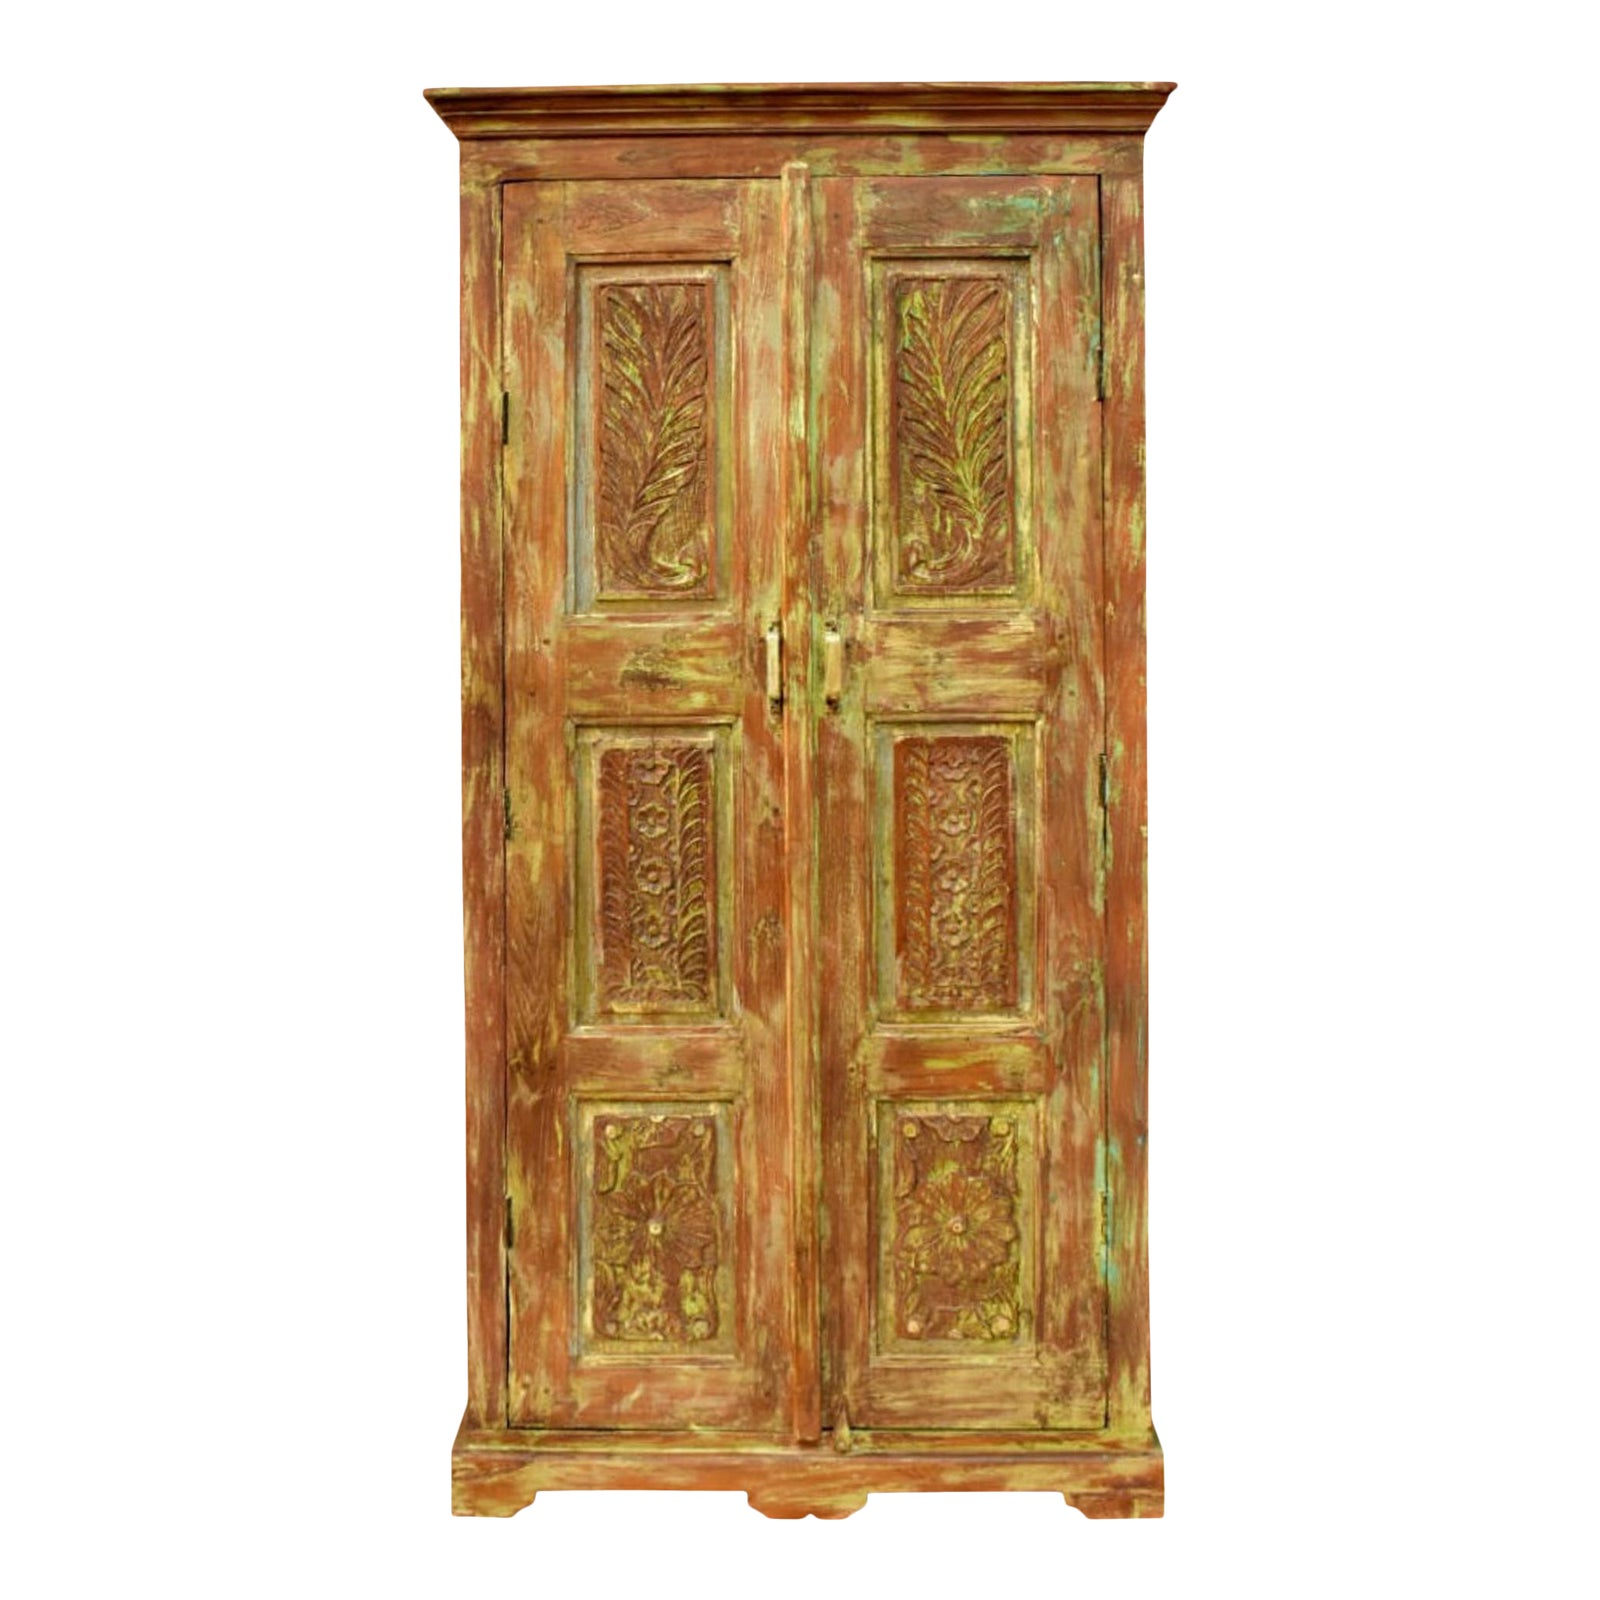 1920s Rustic Farmhouse Floral Carved Armoire Chairish